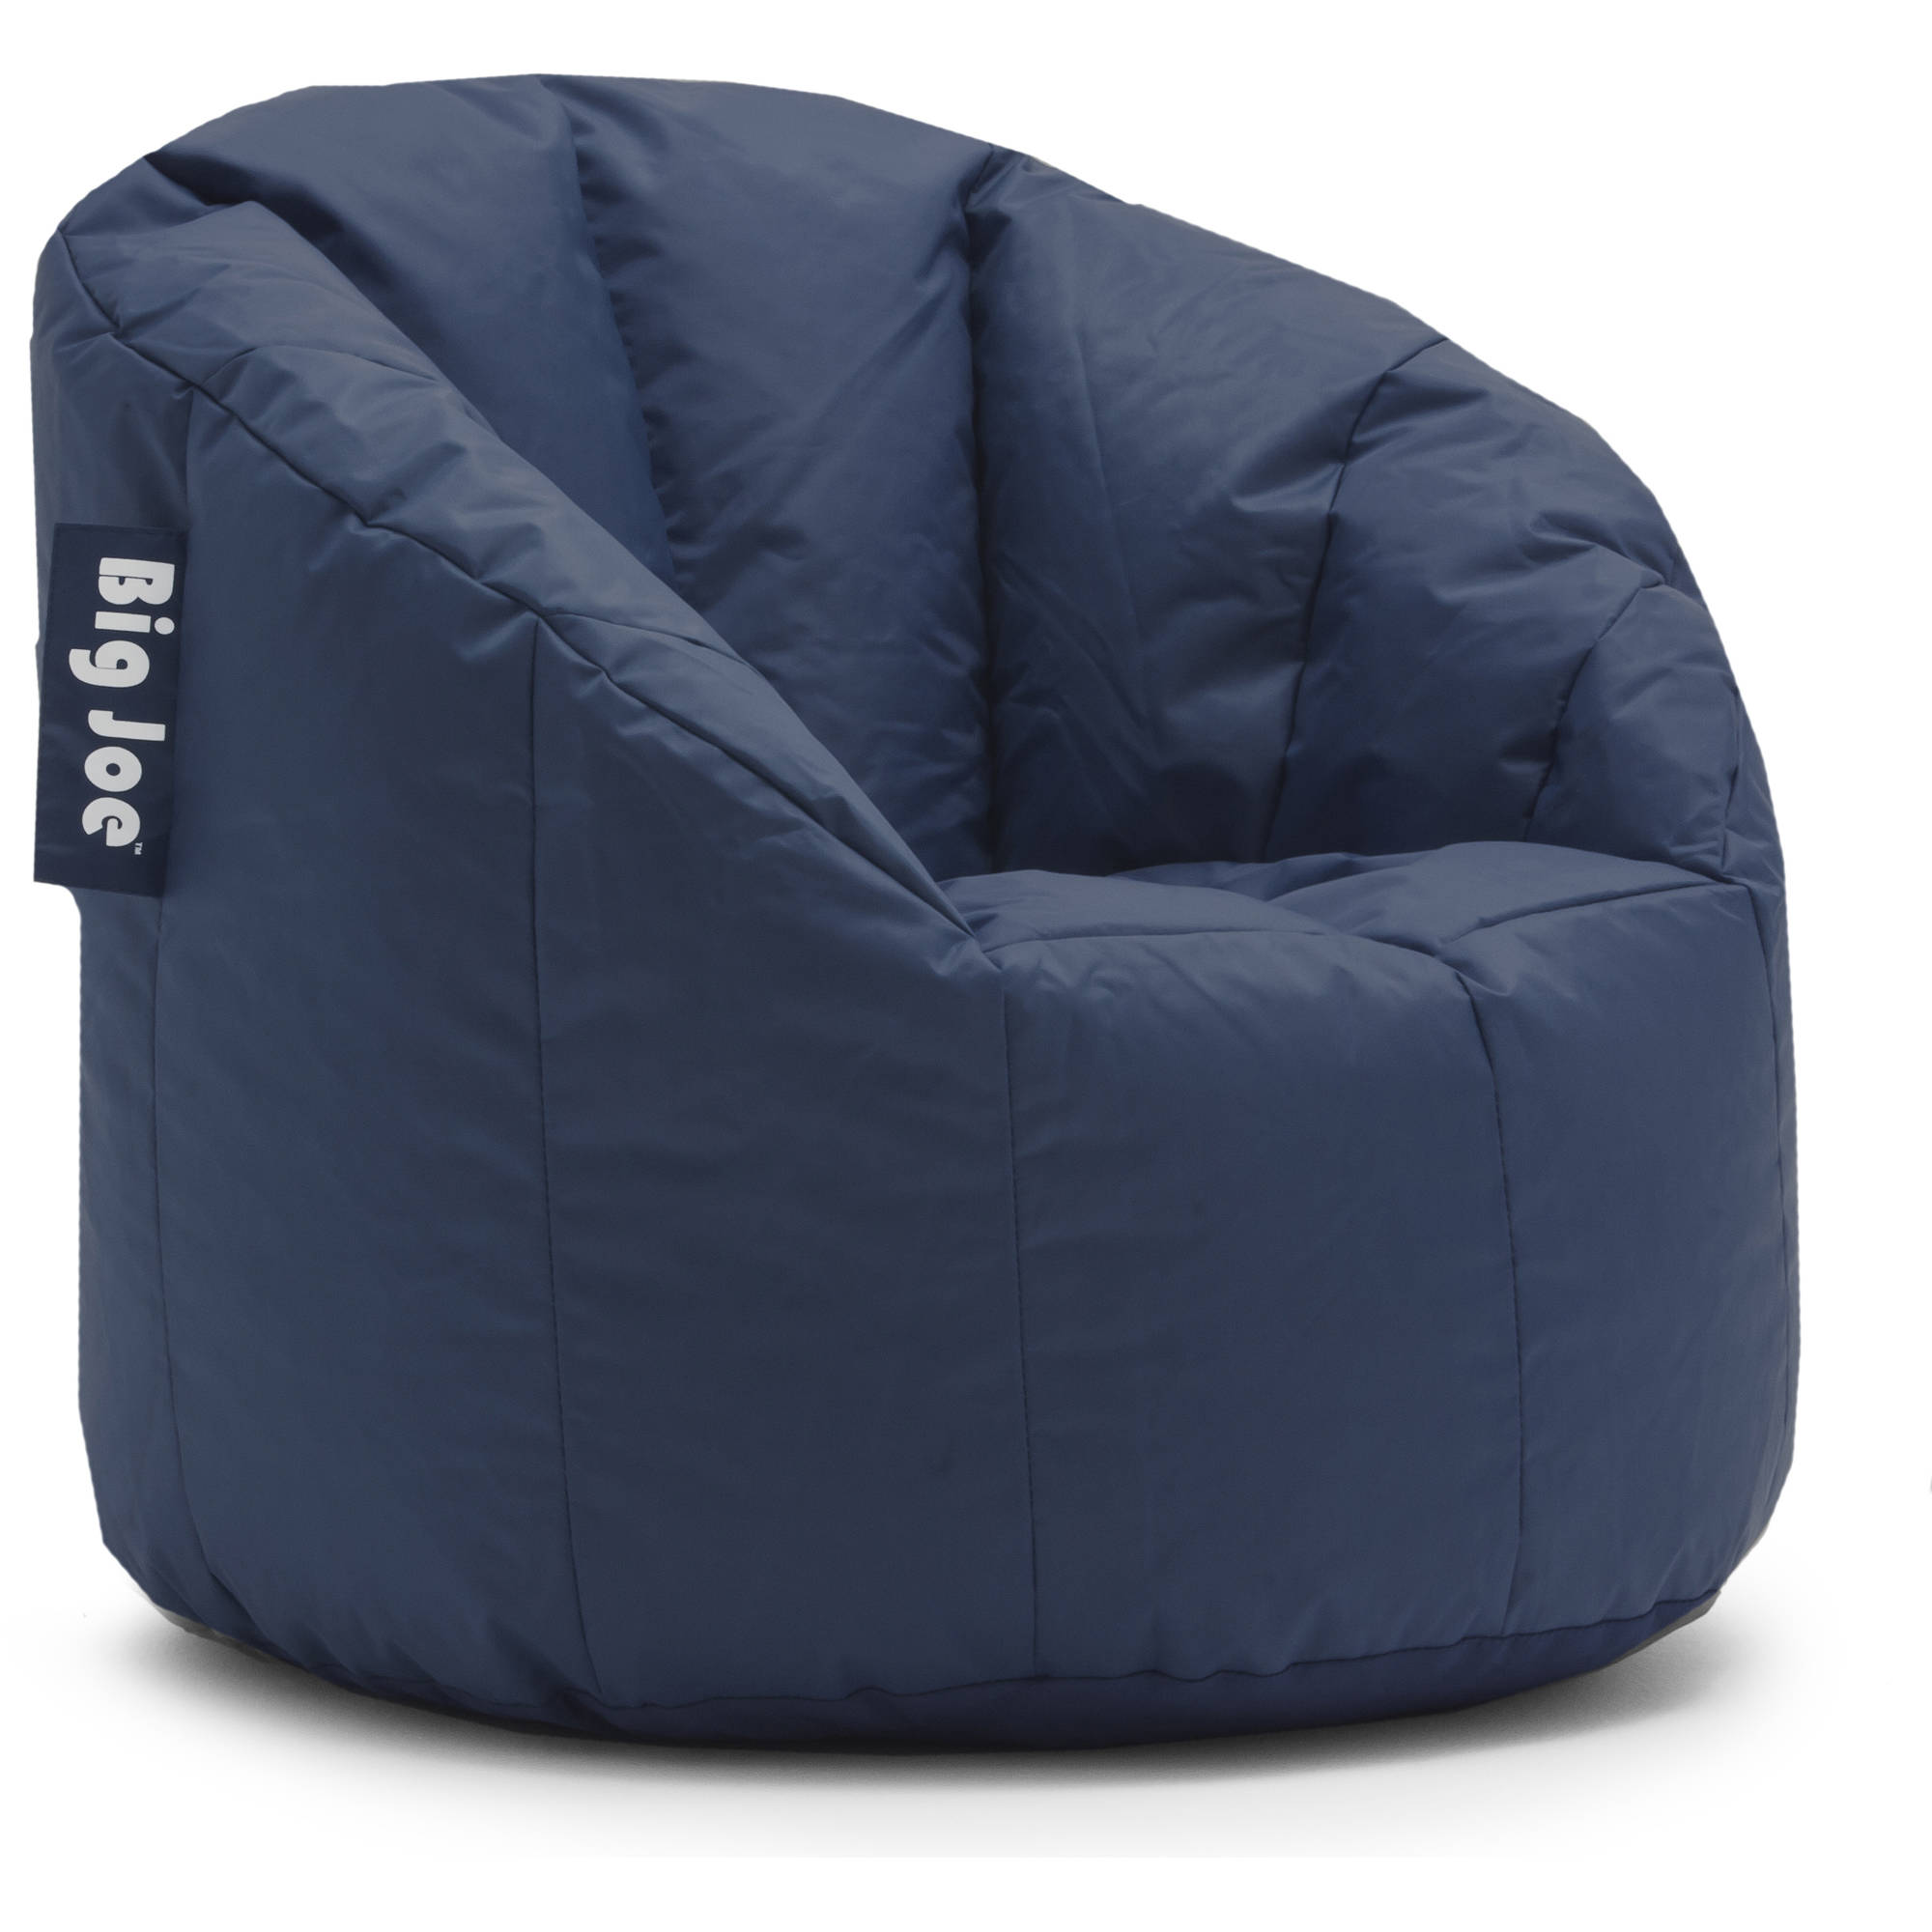 Fantastic Details About Lightweight Bean Bag Chair Navy College Dorm Room Kids Video Gaming Tv Lounge Caraccident5 Cool Chair Designs And Ideas Caraccident5Info